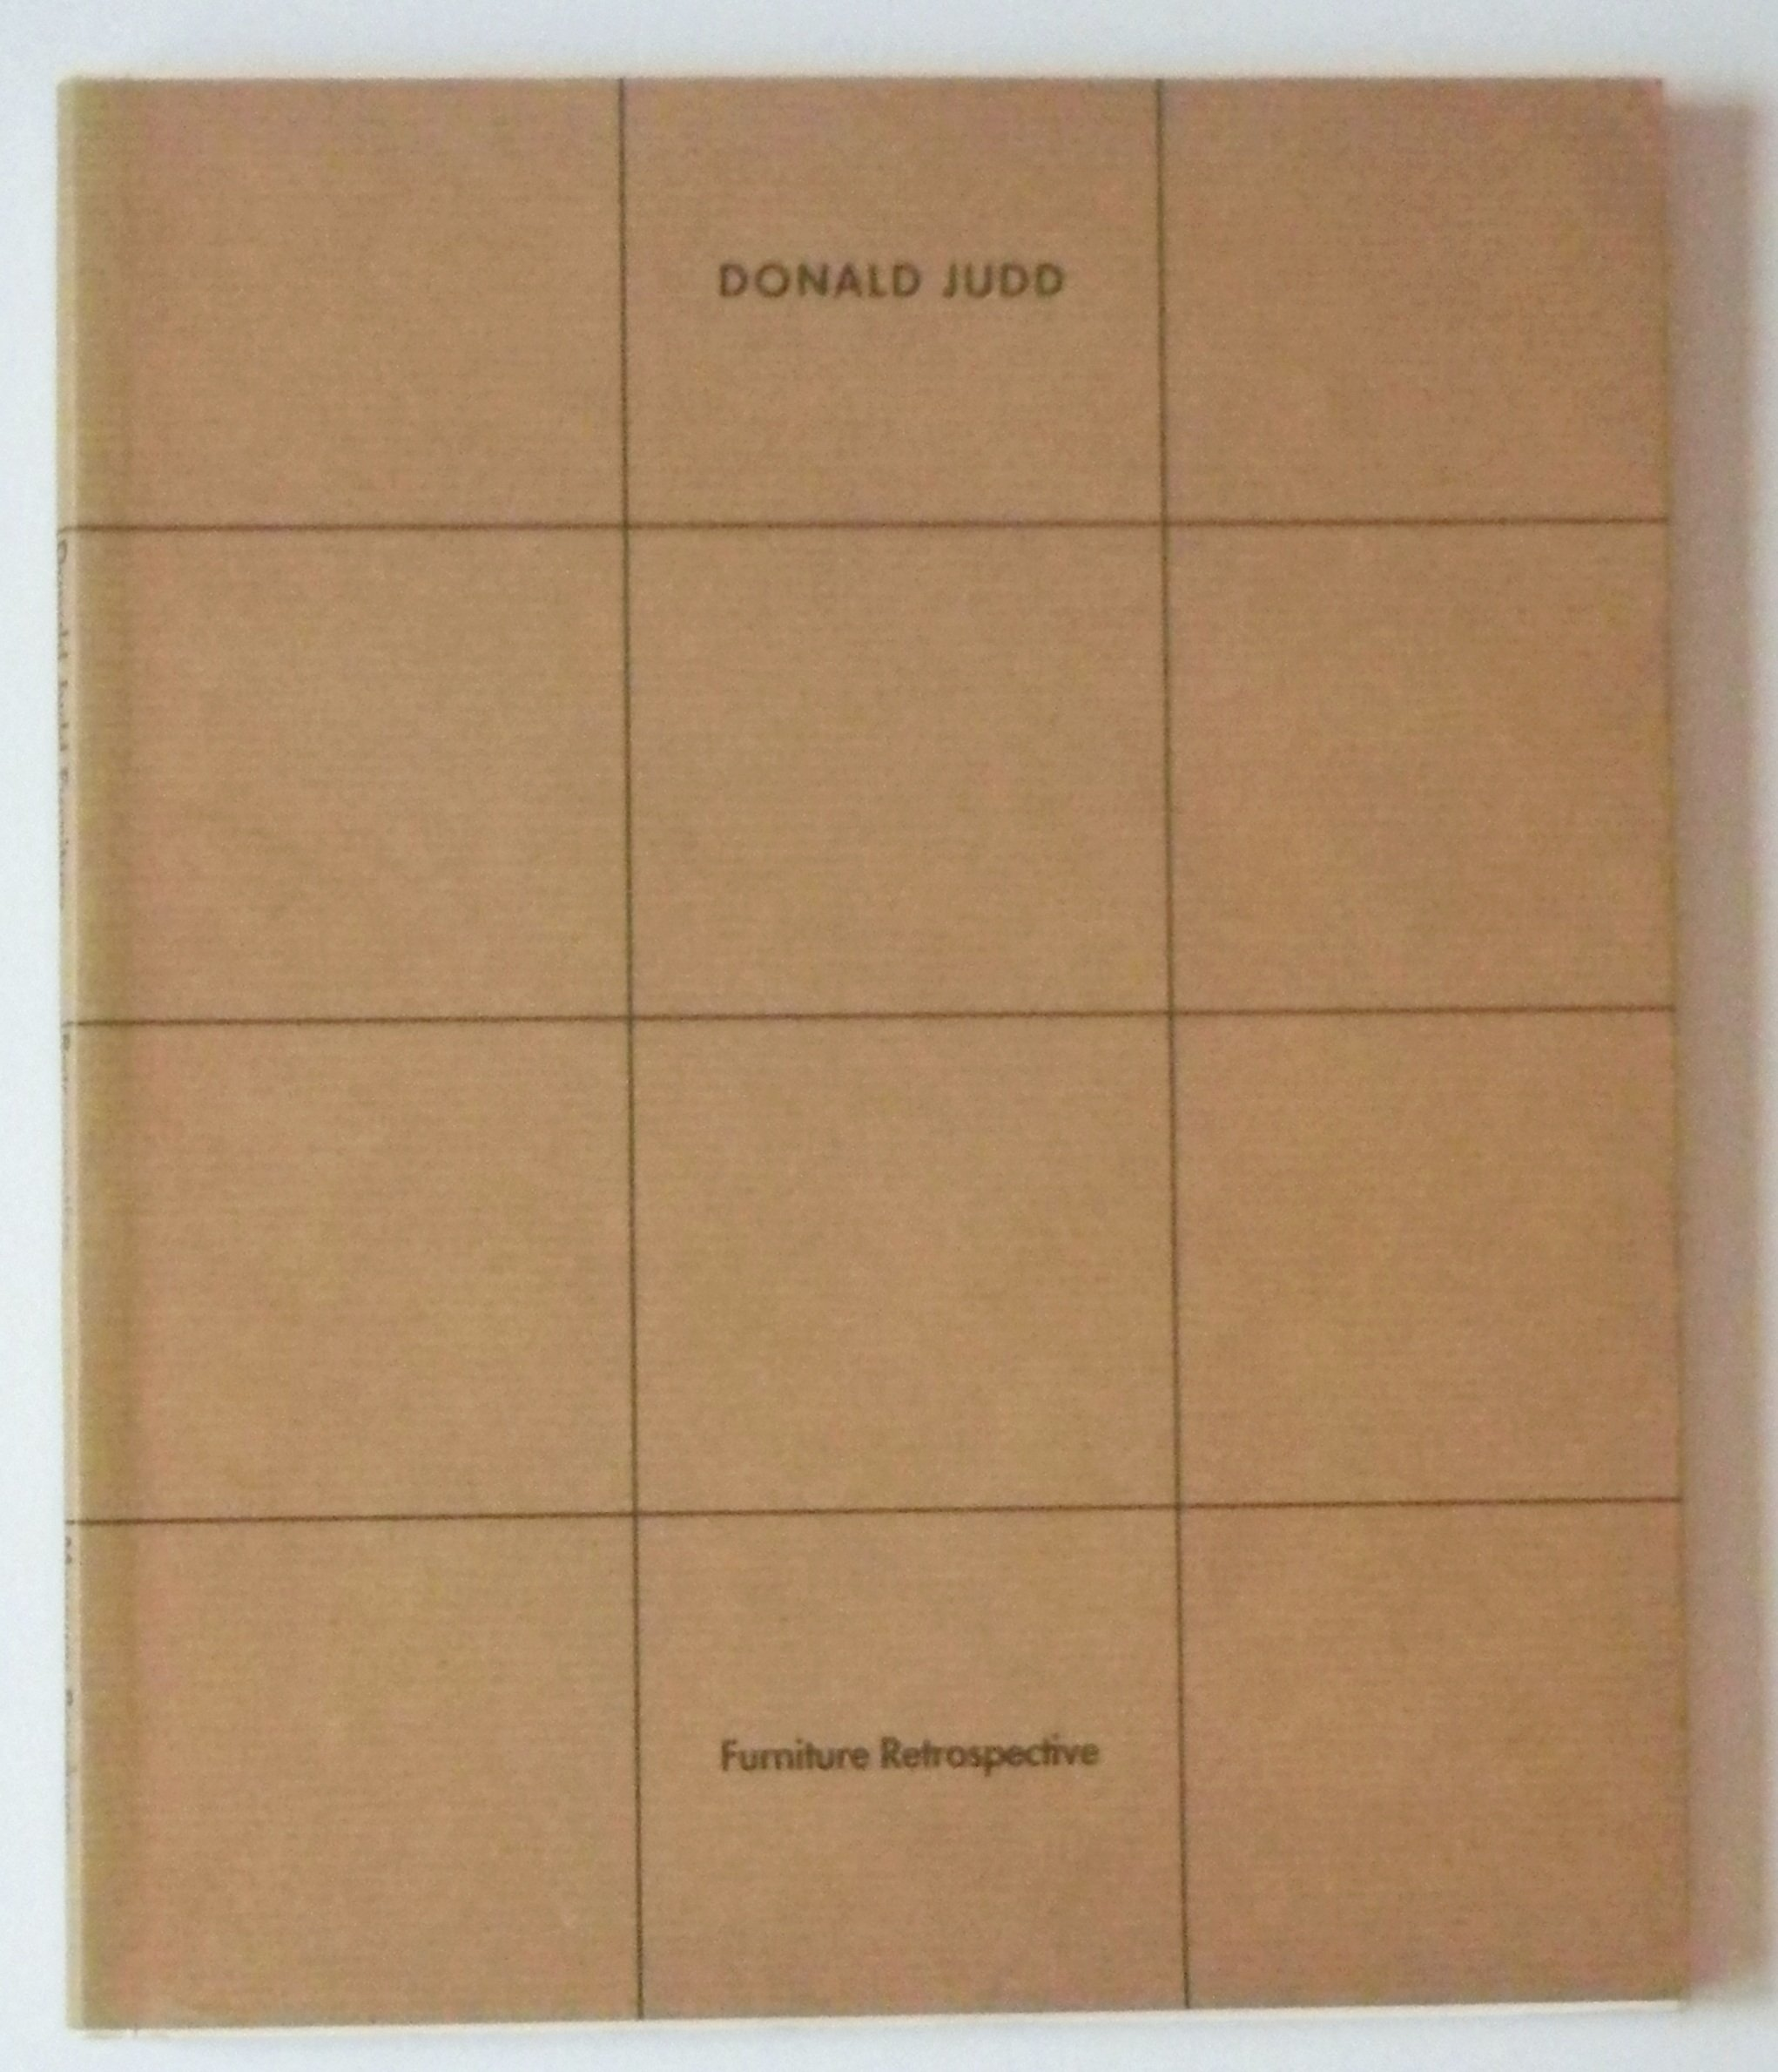 Donald Judd Furniture: Retrospective: Donald Judd: 9789069181394:  Amazon.com: Books